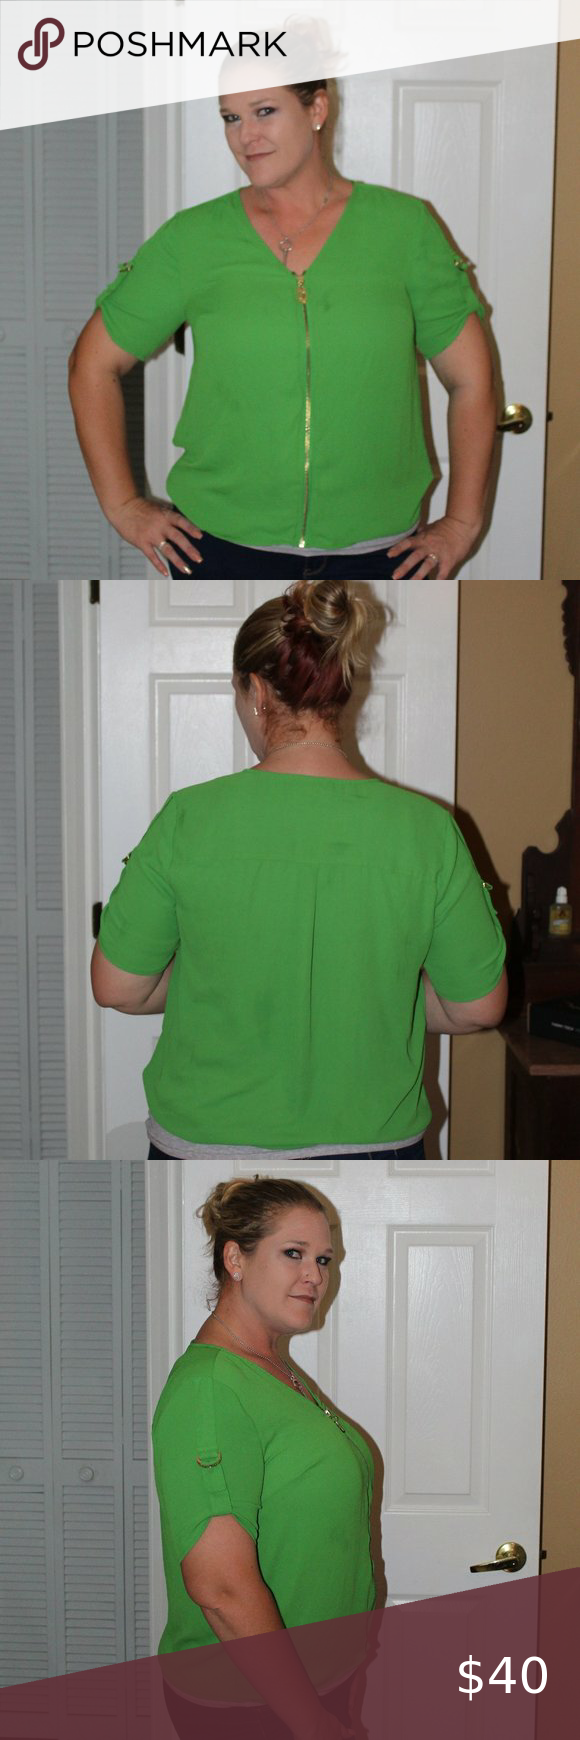 Stunner CK kelly green blouse I am so on the border or wanting to sell this top! I love it so incredibly much. It is so flattering and obviously it is amazingly made being Michael Kors. Love, love, love the kelly green, too. You will adore this shirt, I now you will. It is in perfect condition! Michael Kors Tops Blouses